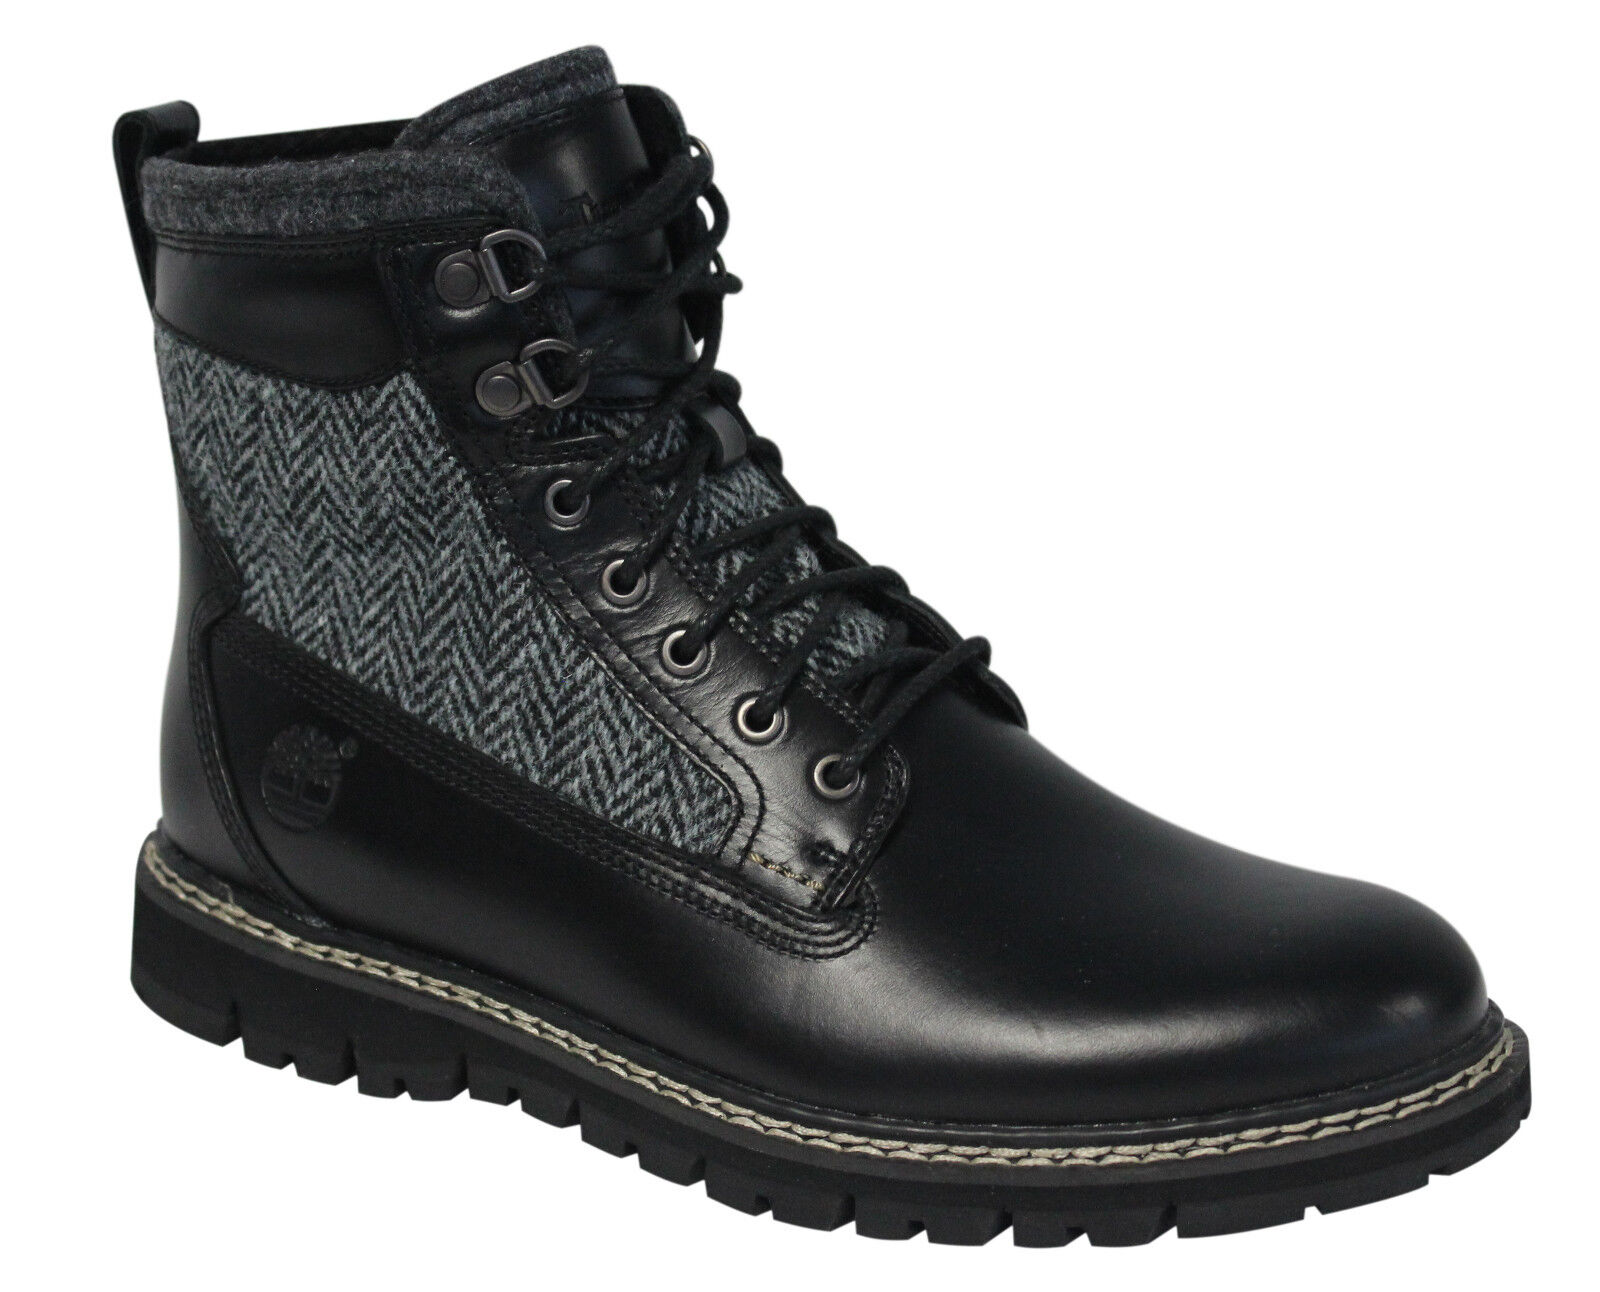 Details about Timberland Britton Hill 6 Inch Warm Lined Leather Mens Boots Black 9721B D74